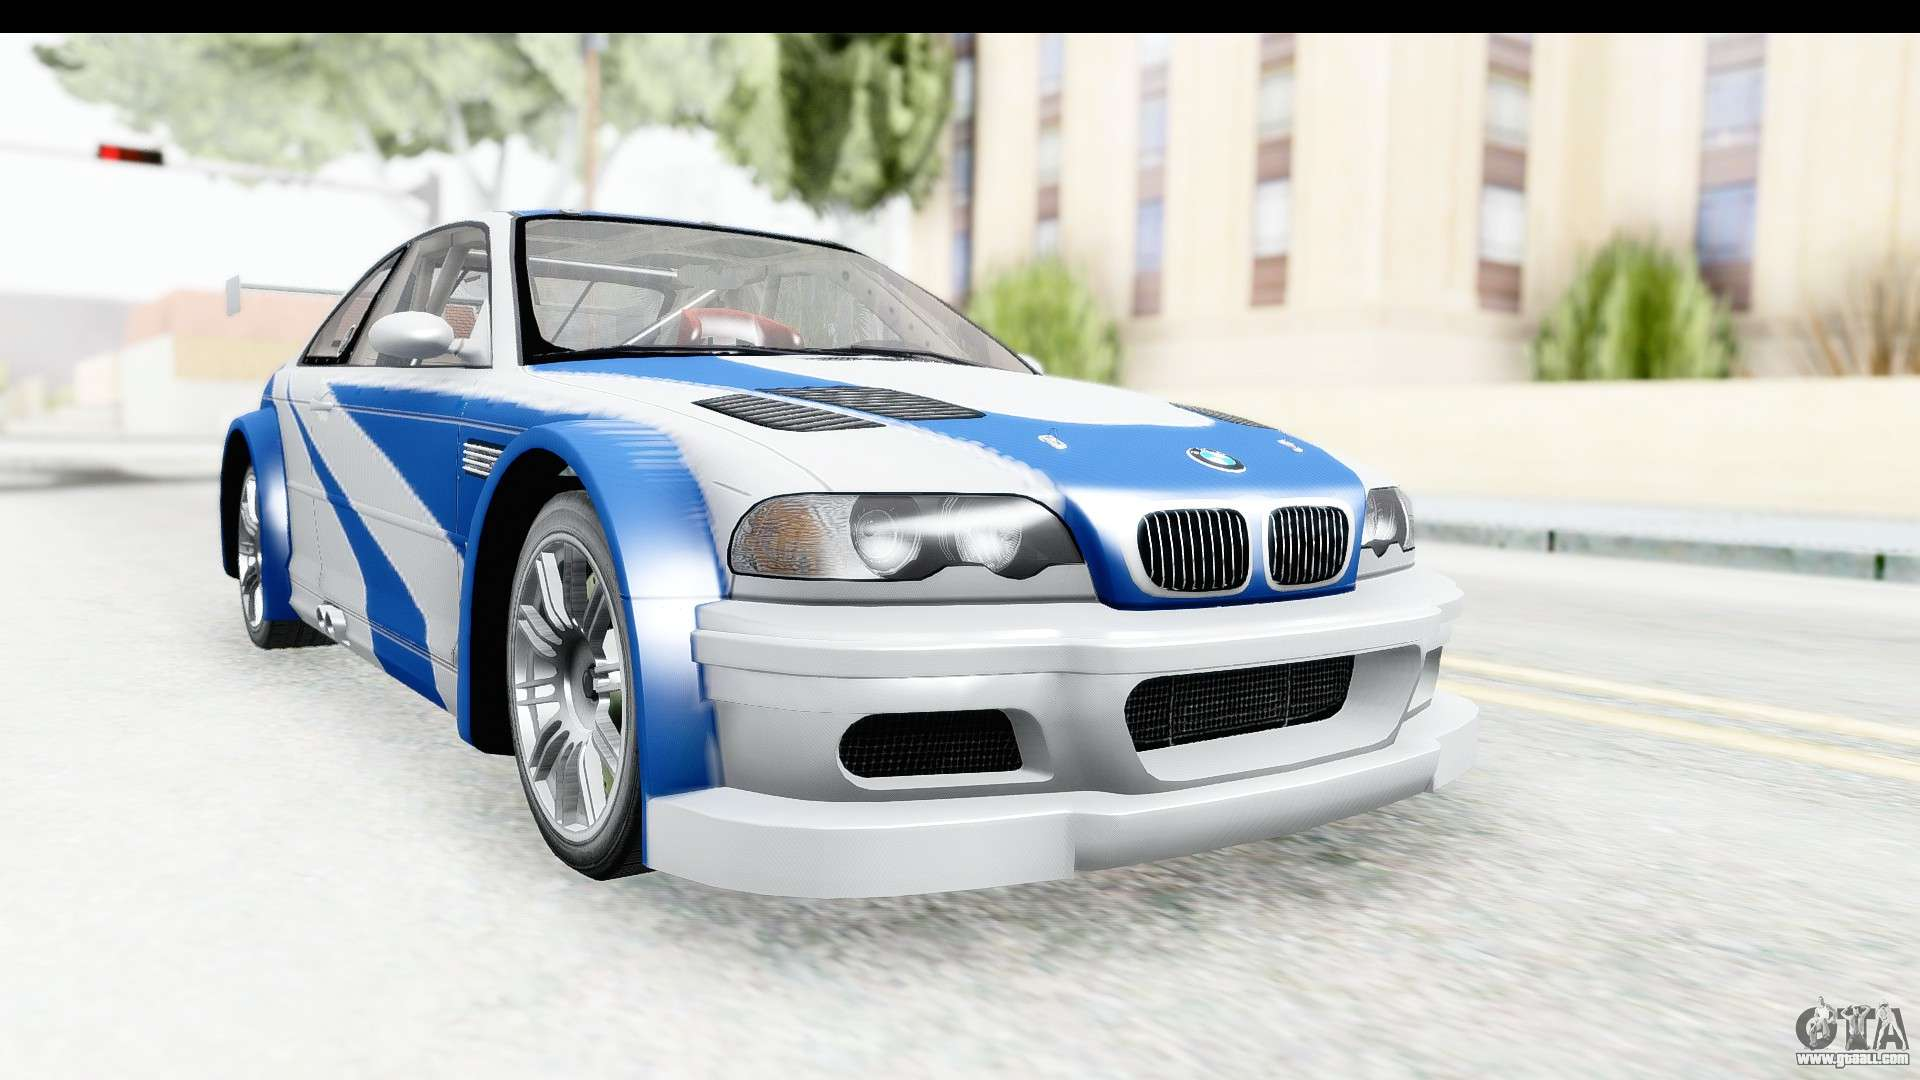 Nfs Mw Bmw M3 Gtr For Gta San Andreas